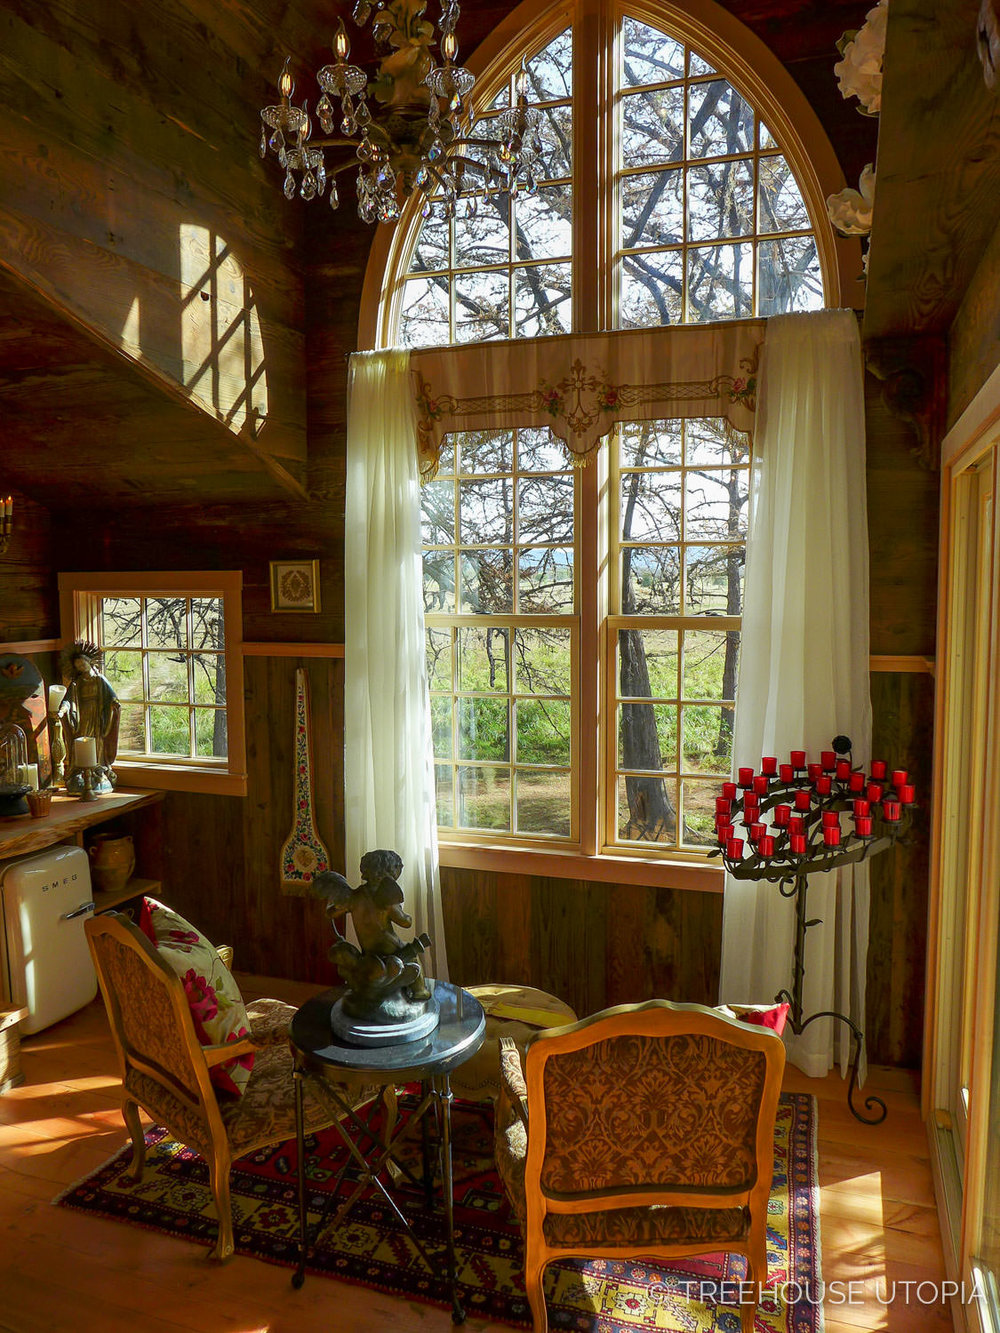 View from one of the gothic windows on Chapelle at Treehouse Utopia, a Texas Hill Country Retreat. Photo by Nelson Treehouse.